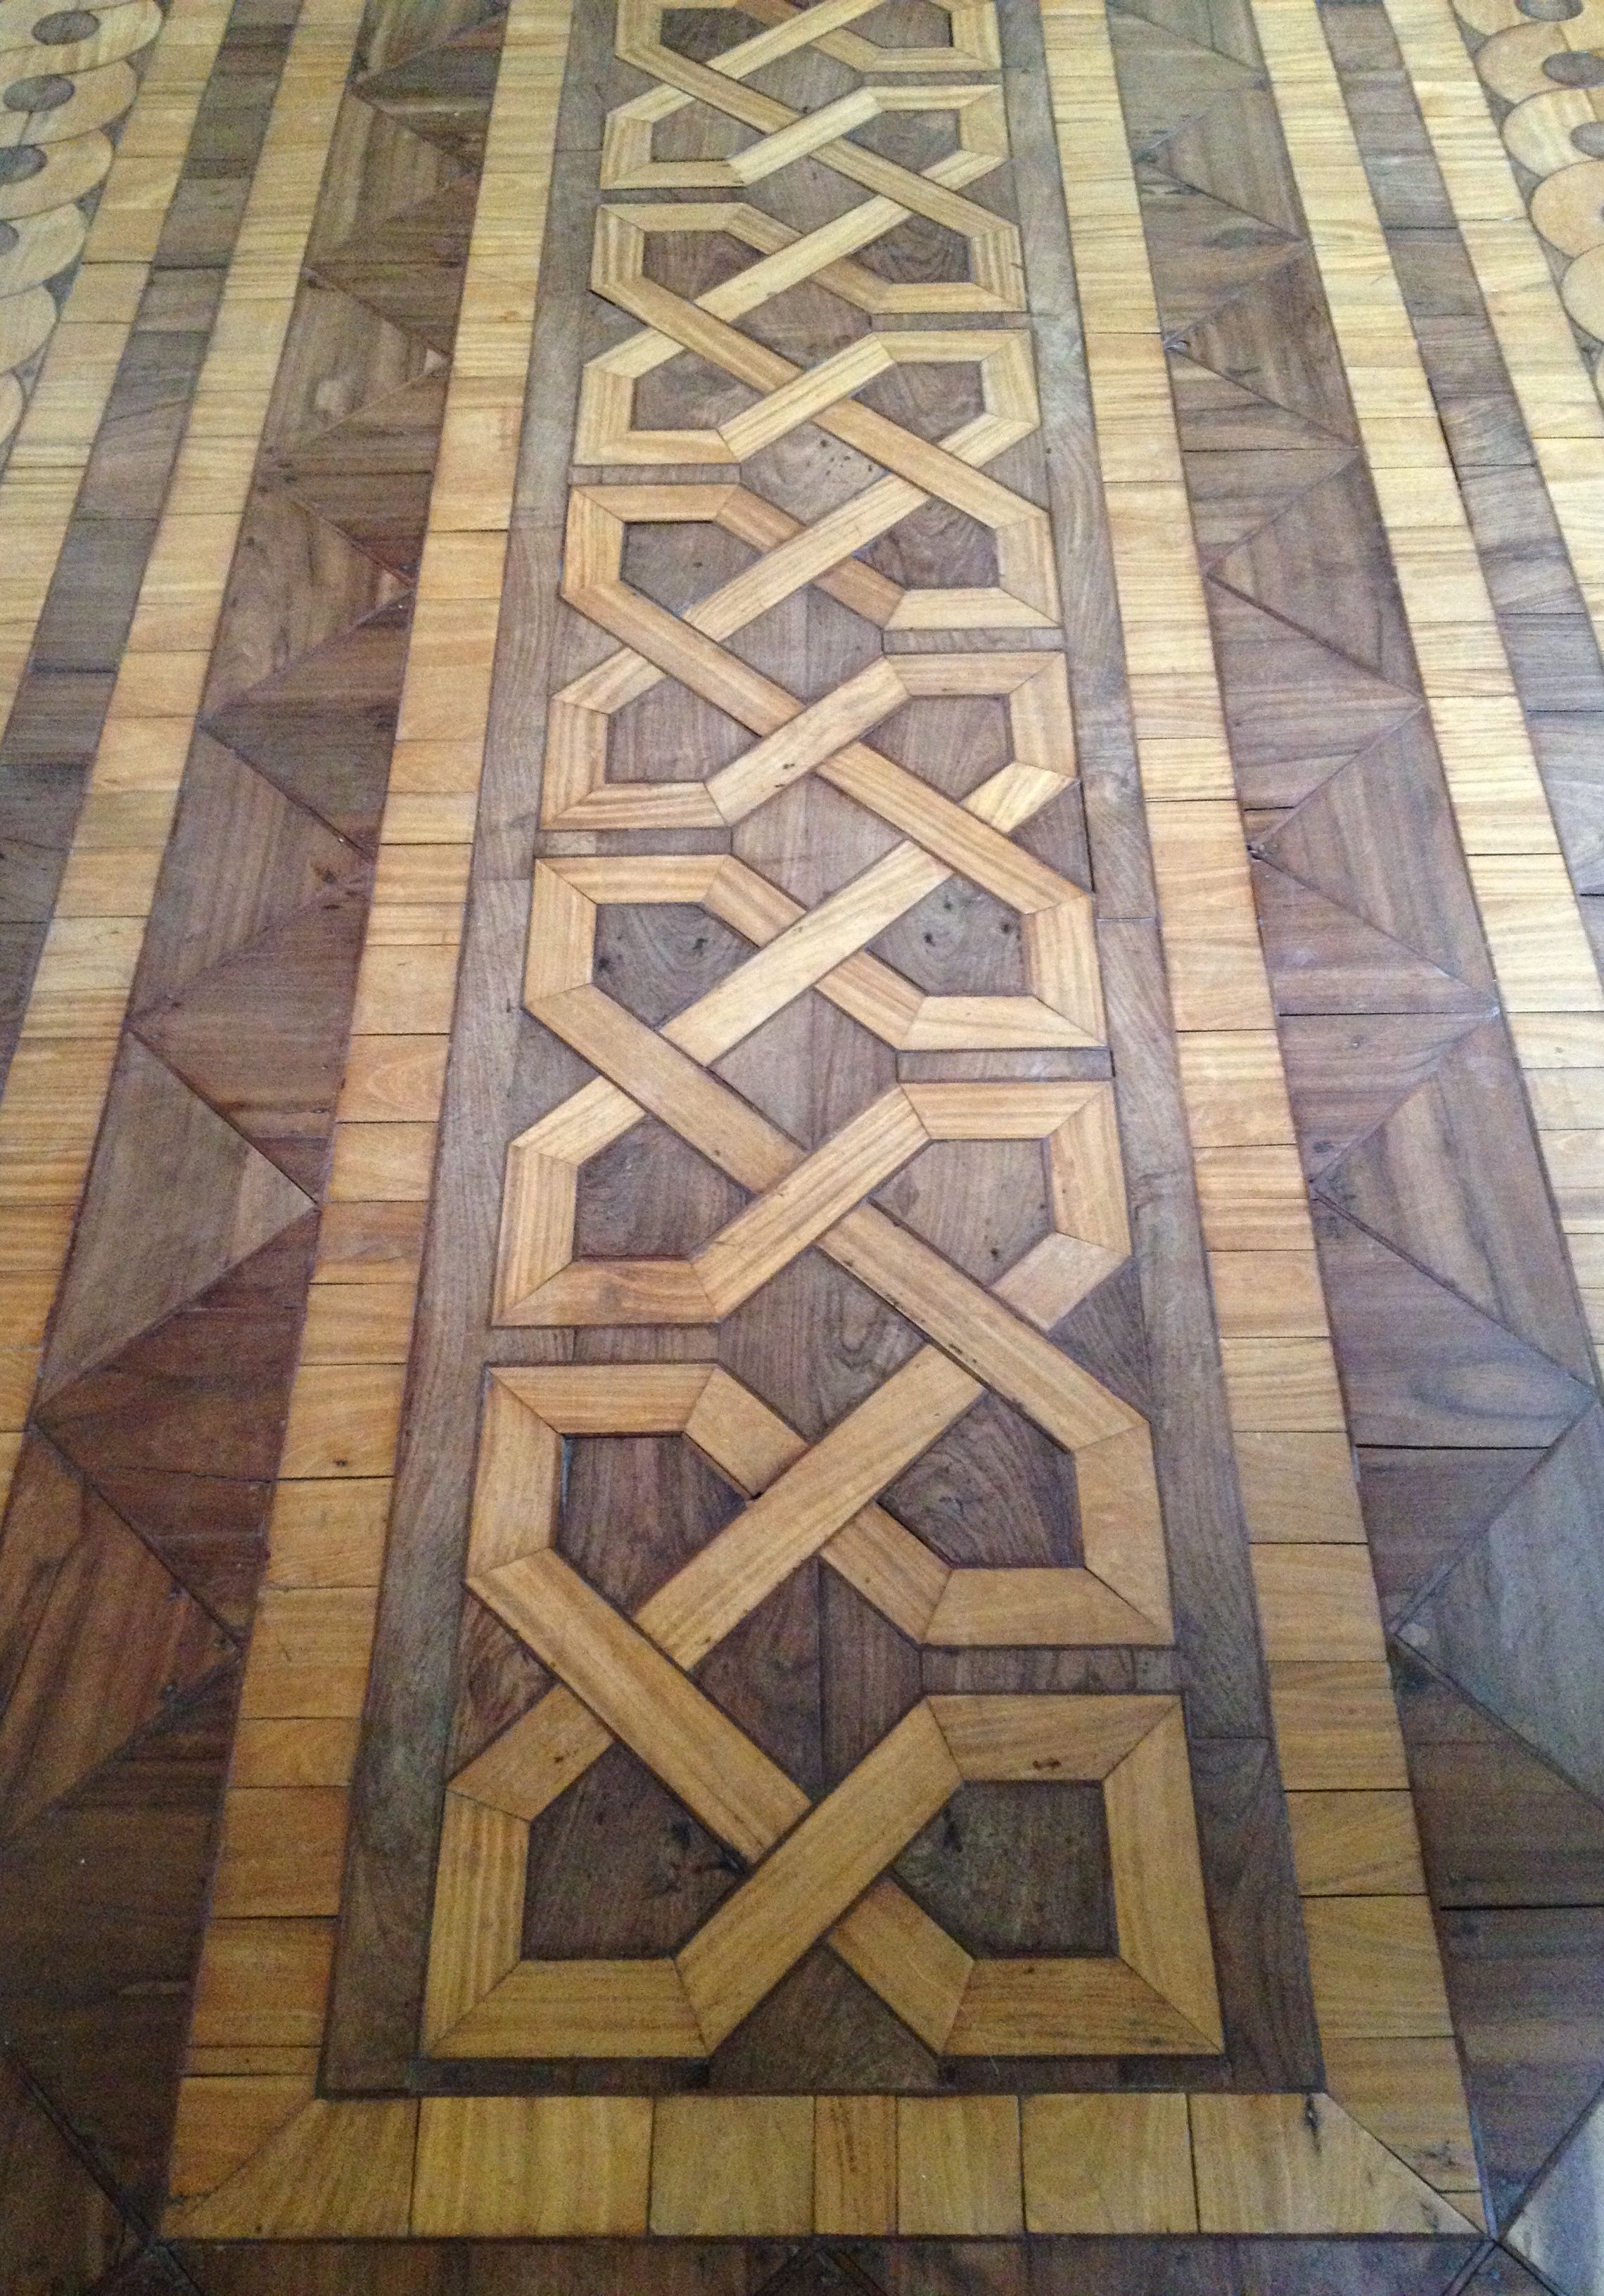 Two sections of the marquetry floors in the saloon at Ballyfin, County Laois. Dating from the 1820s and designed by the Morrisons père et fils, the house was built for Sir Charles Coote, premier ba...